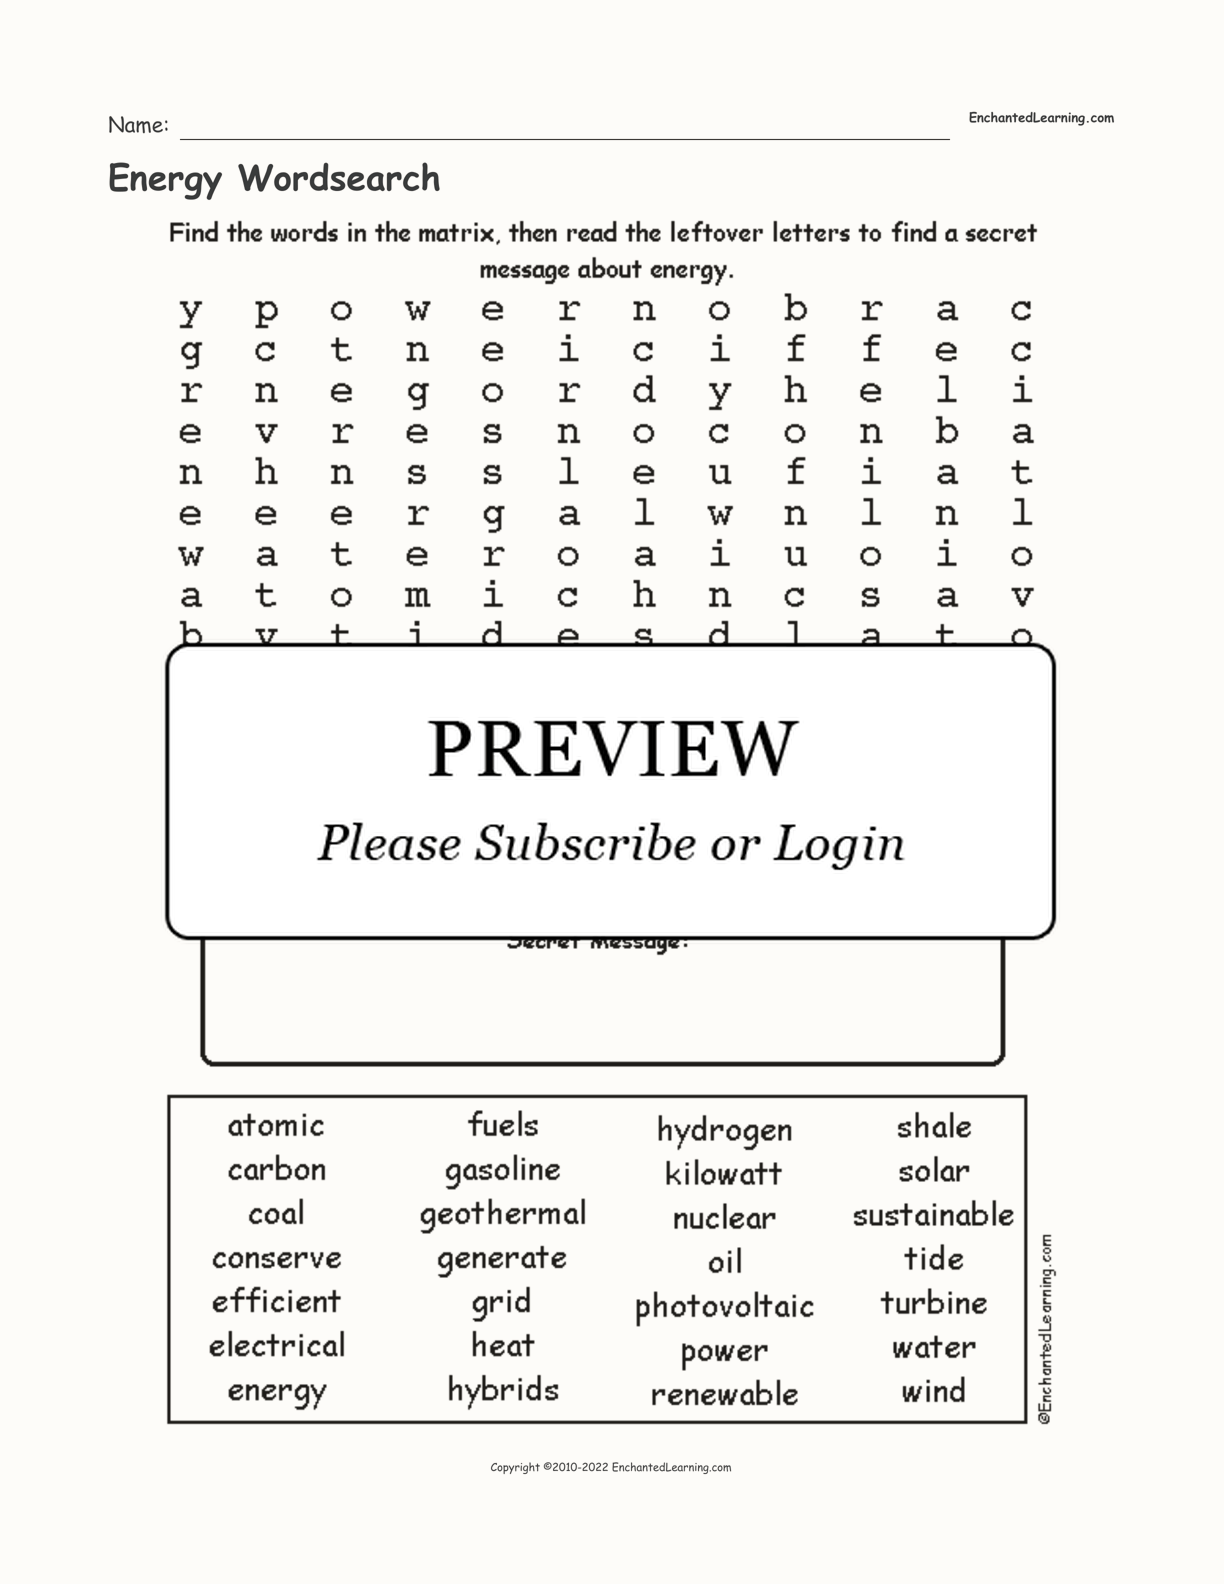 Energy Wordsearch